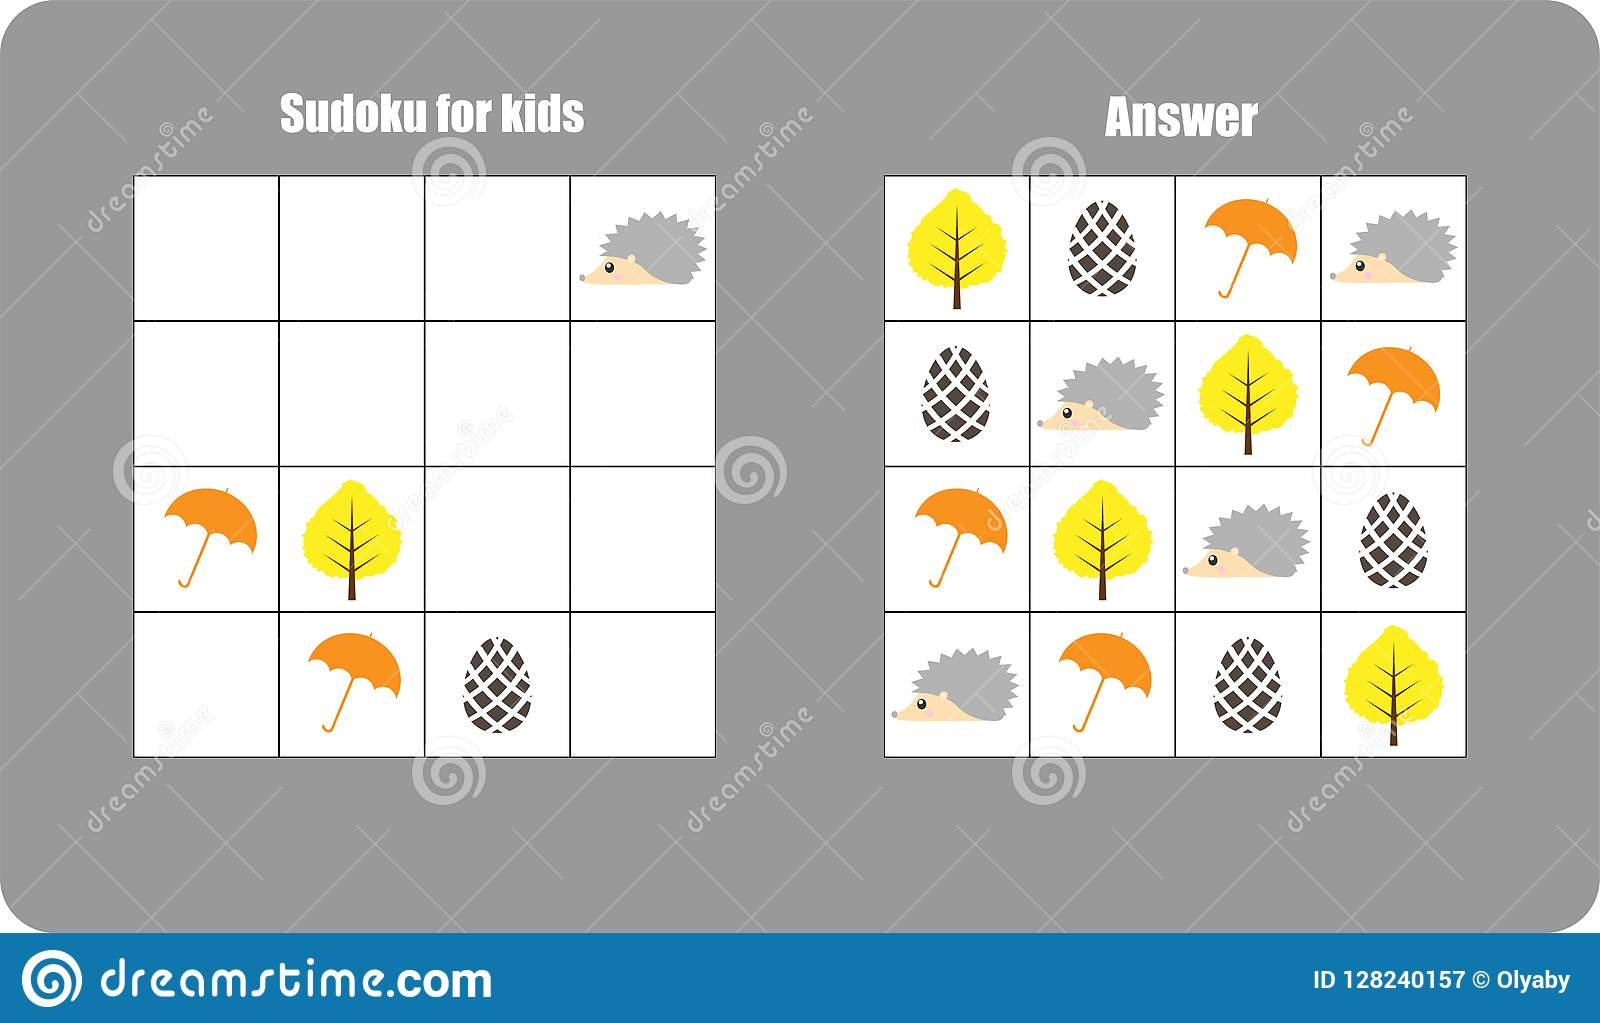 Sudoku Game With Autumn Pictures Umbrella Leaf For